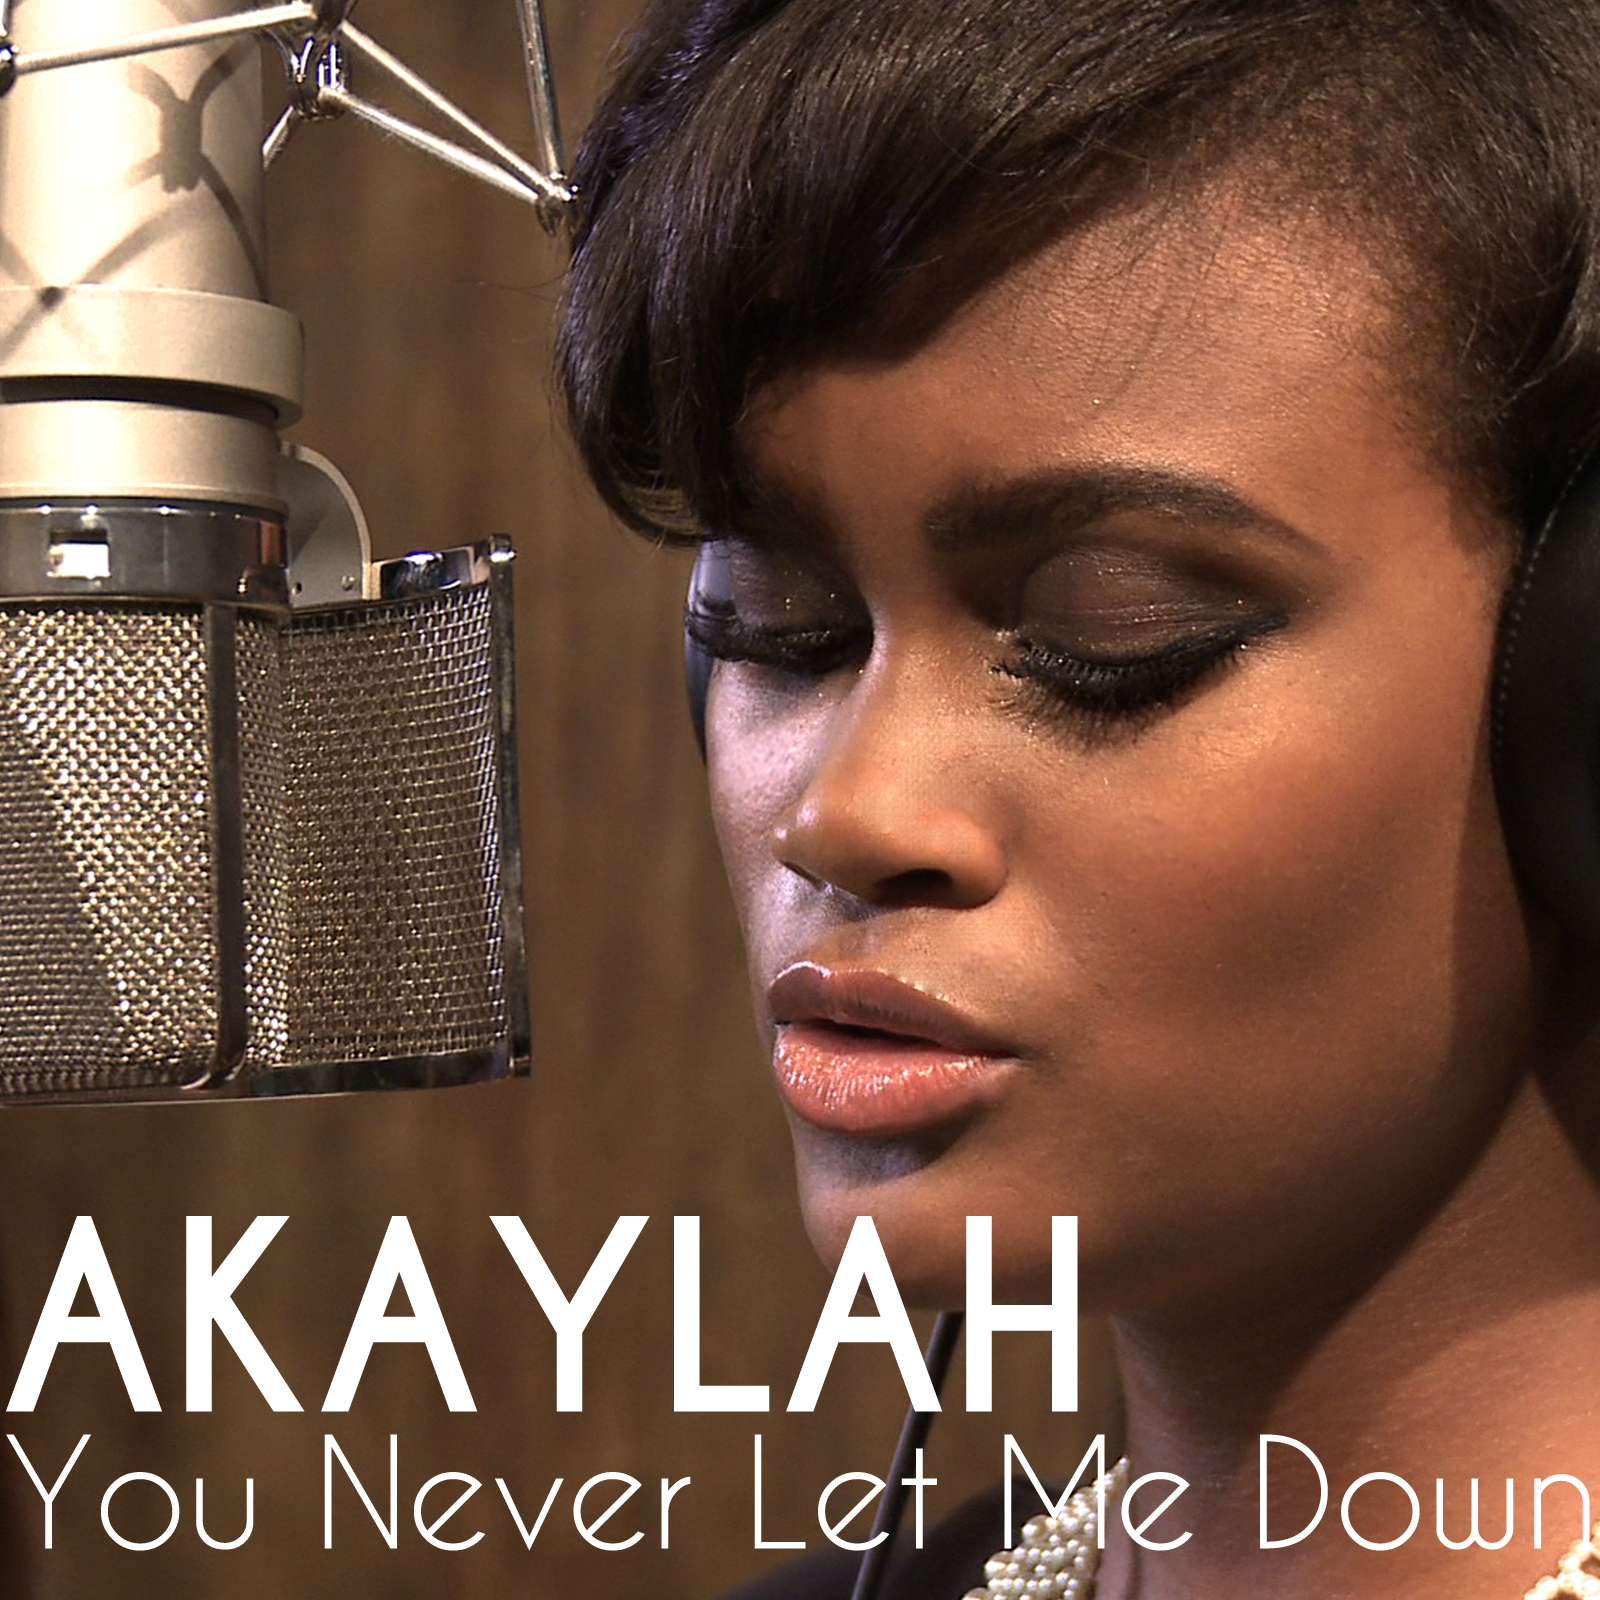 Akaylah - You Never Let Me Down